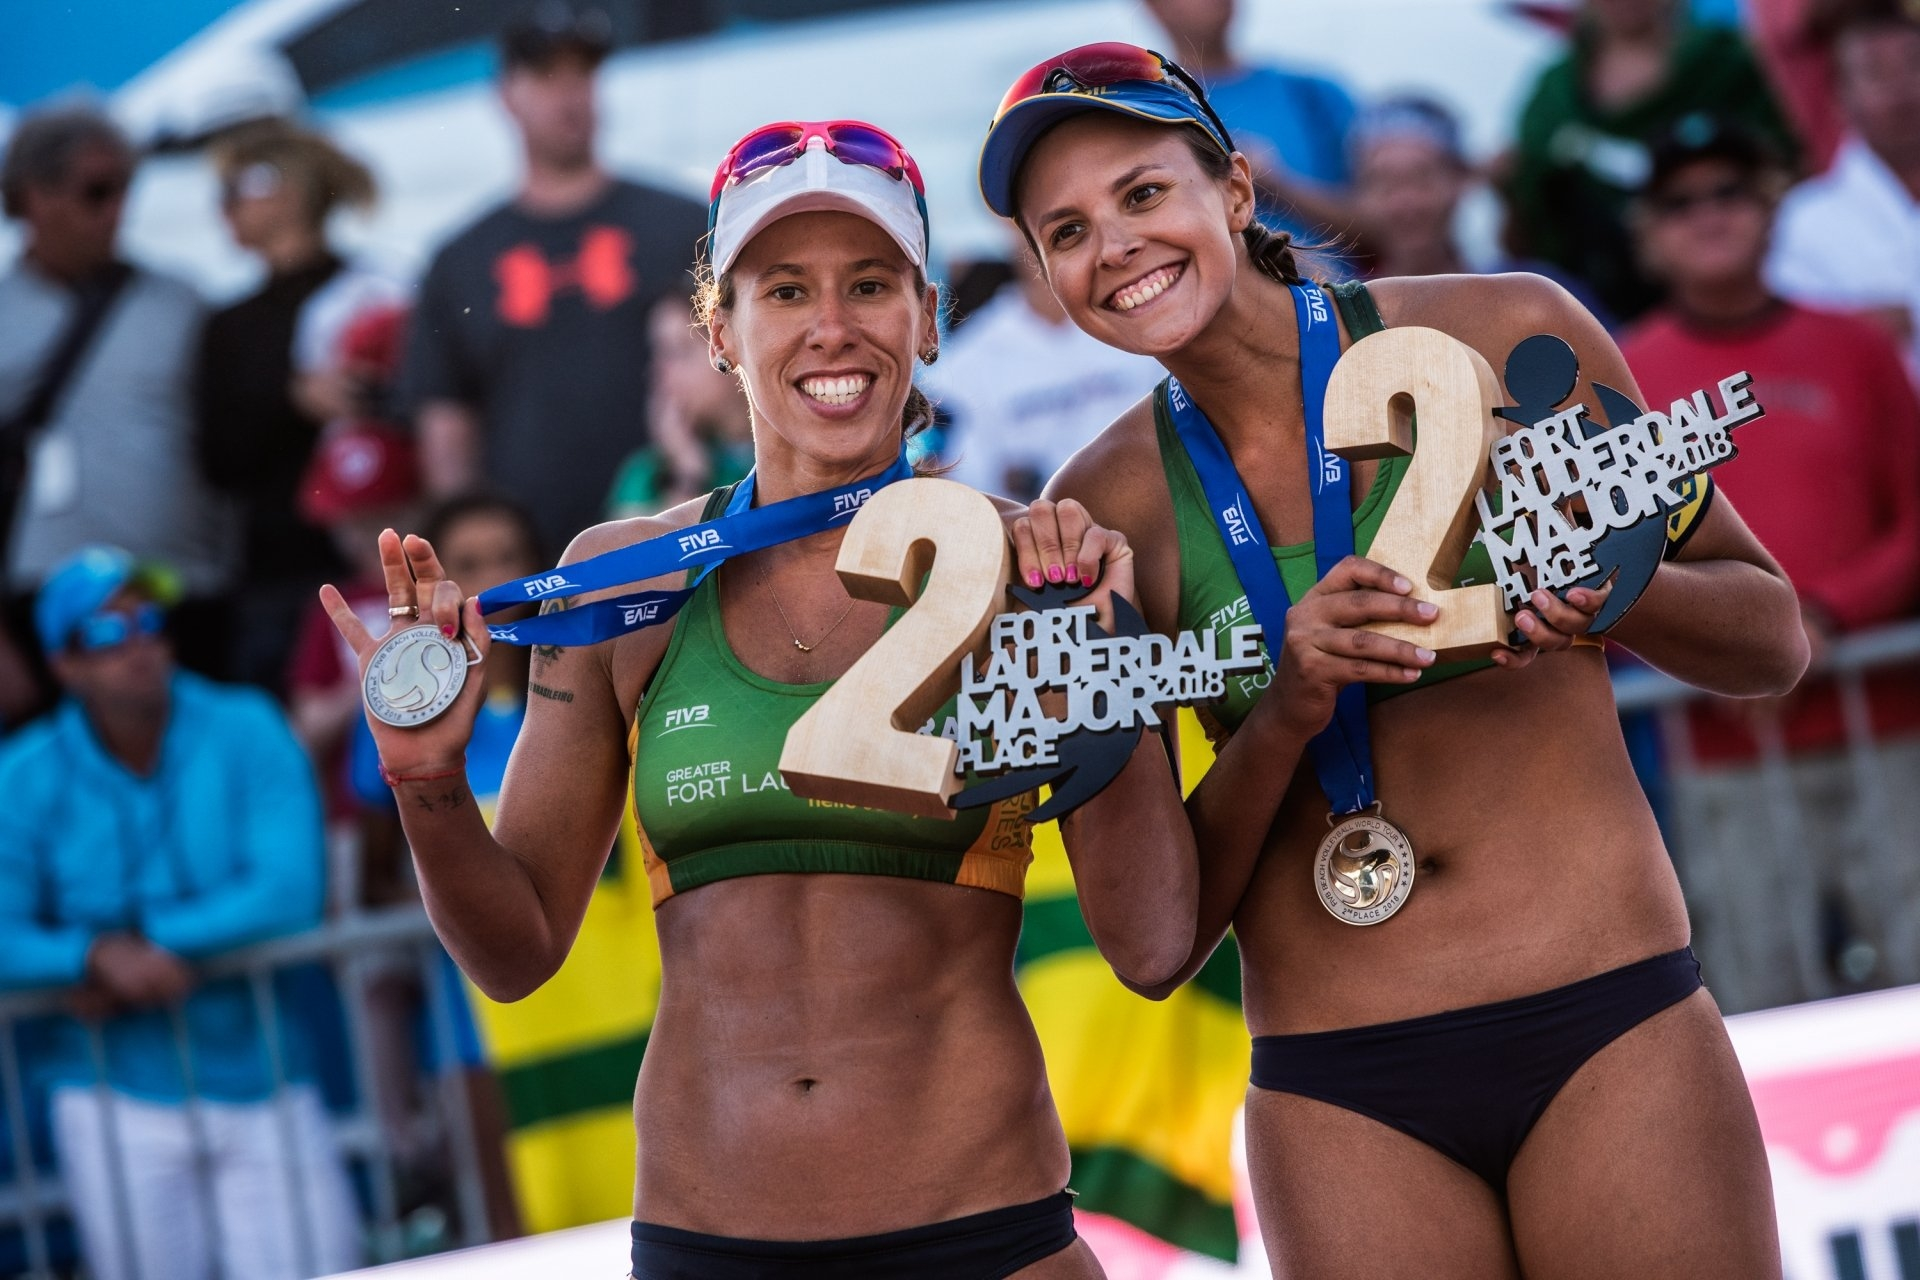 Brazilians Taiana and Carol Horta won silver in Fort Lauderdale